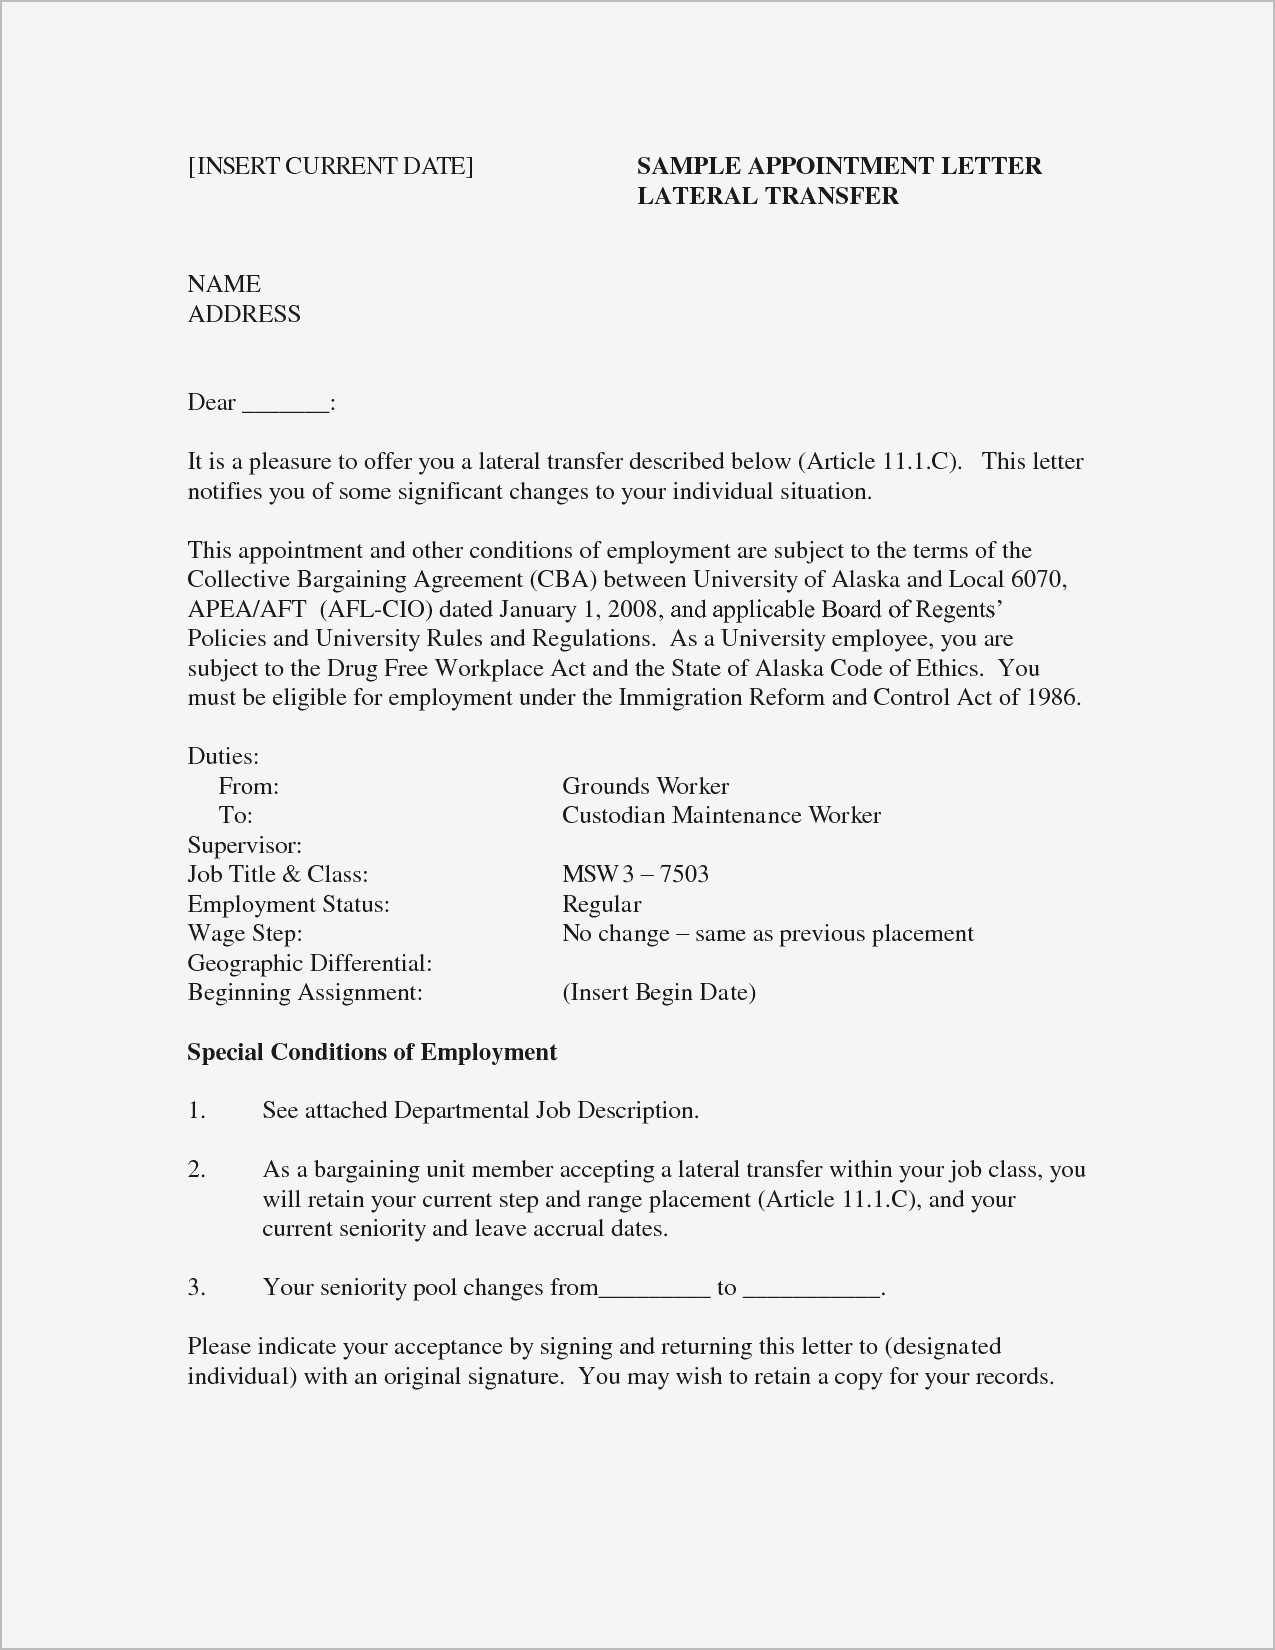 letter outline template Collection-Cover Letter Template Word 2014 Fresh Relocation Cover Letters Od Specialist Sample Resume Portfolio 12-l